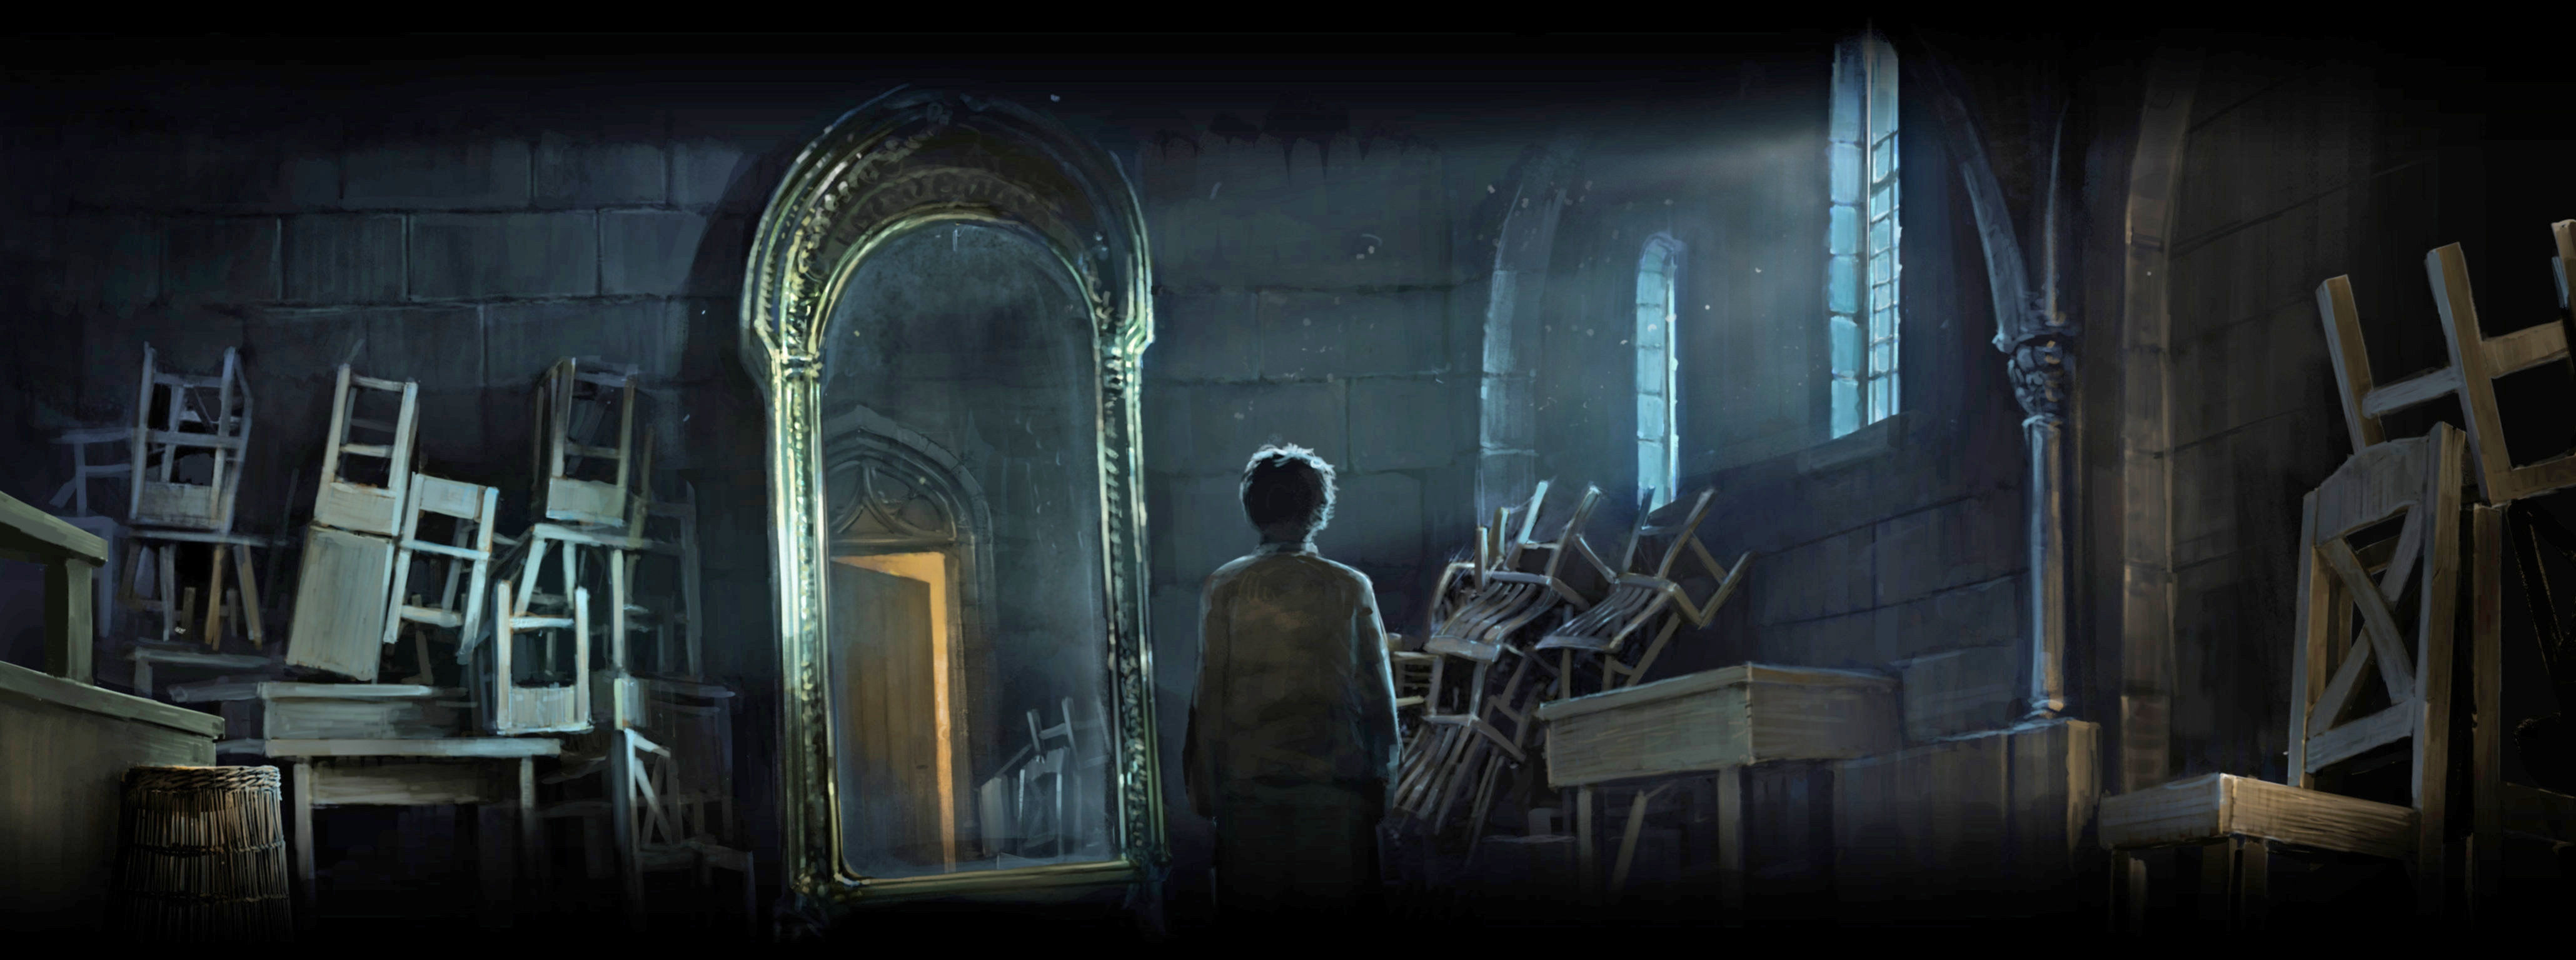 Harry in front of the Mirror of erised